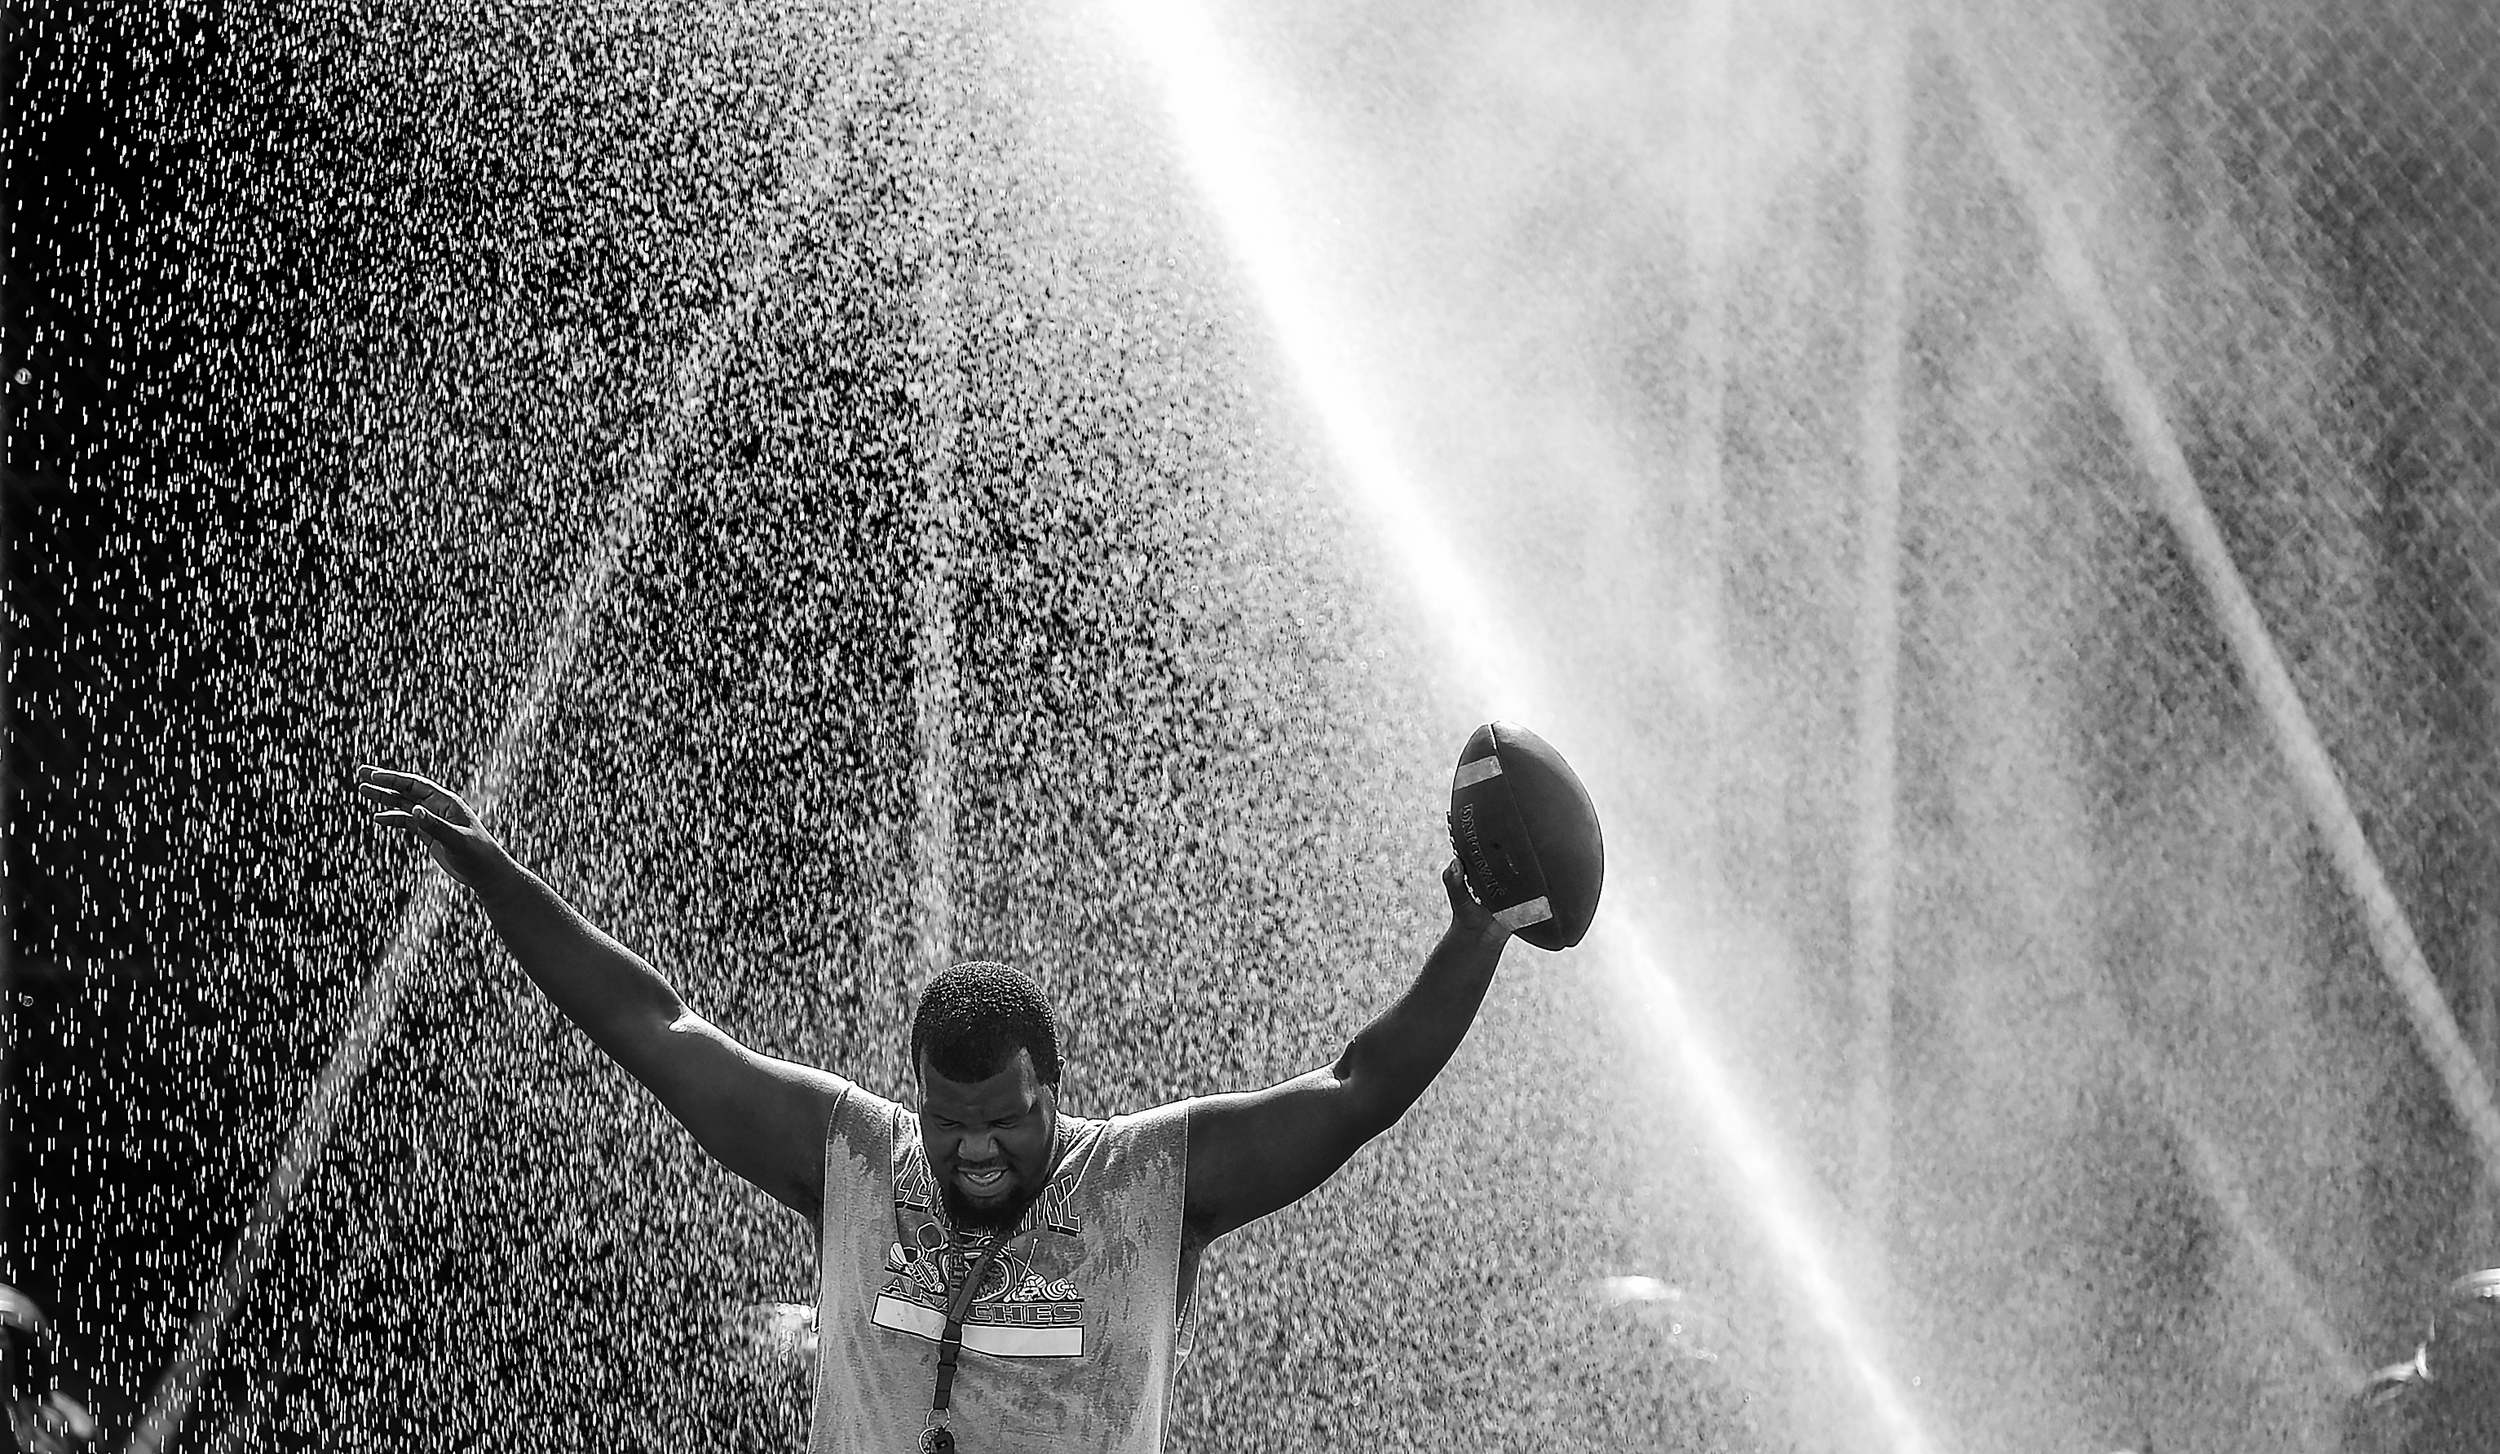 Coach Djon Low takes advantage of a water sprinkler to cool off during a summer football practice at Centennial High School in Compton, CA. Wednesday July 29, 2015.